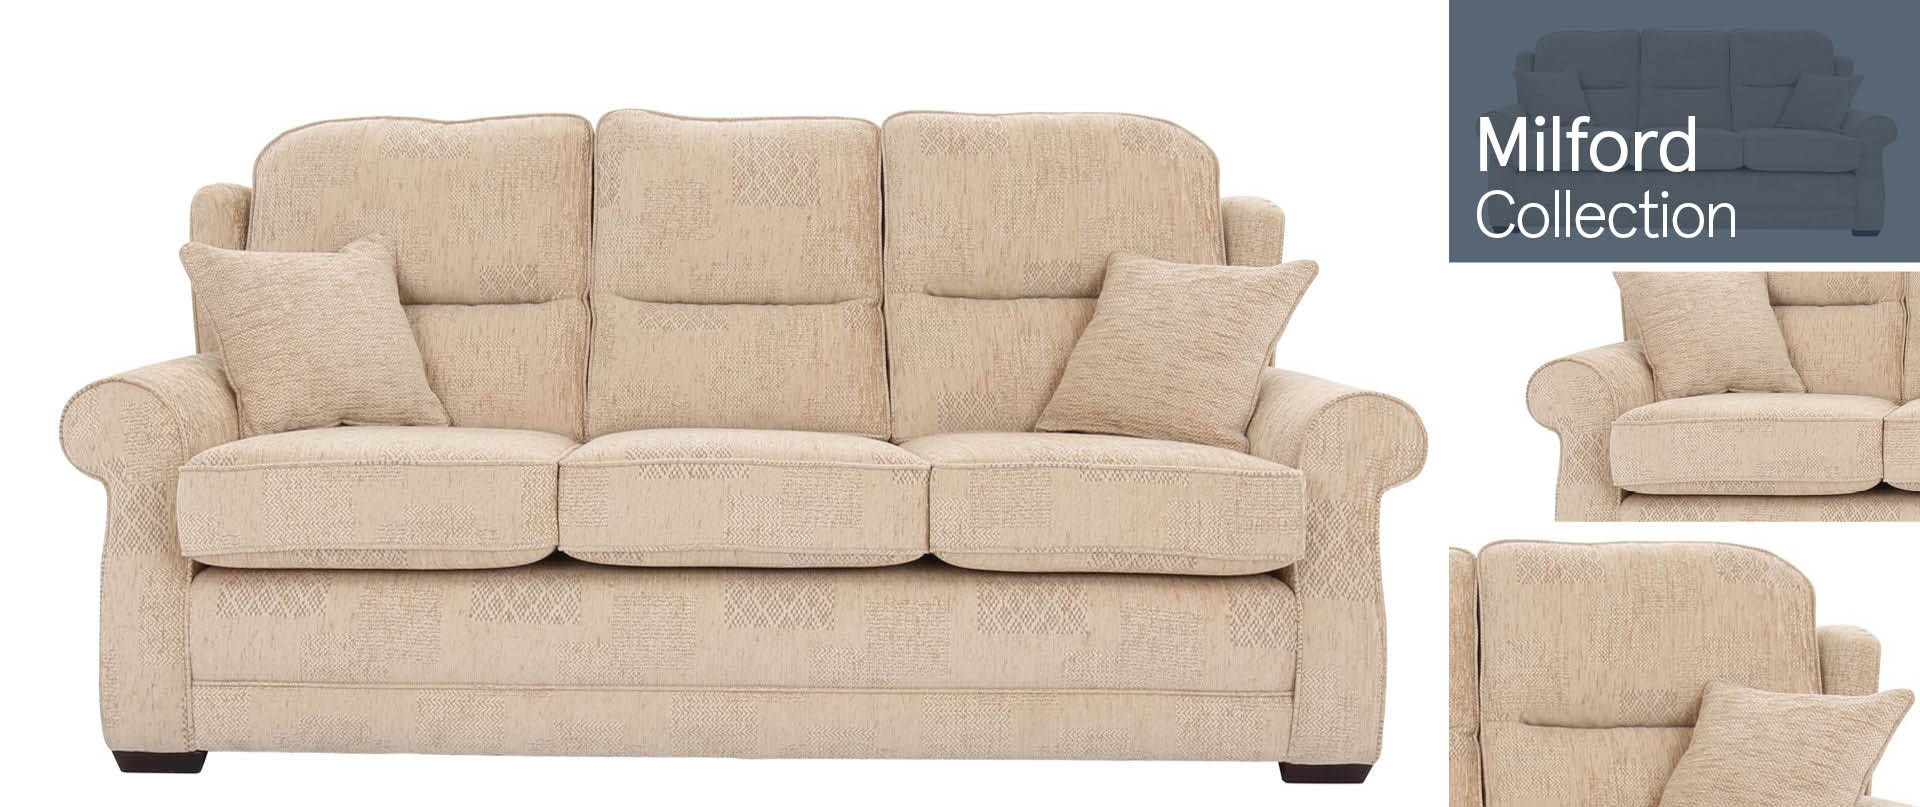 Milford All Fabric Sofa Ranges